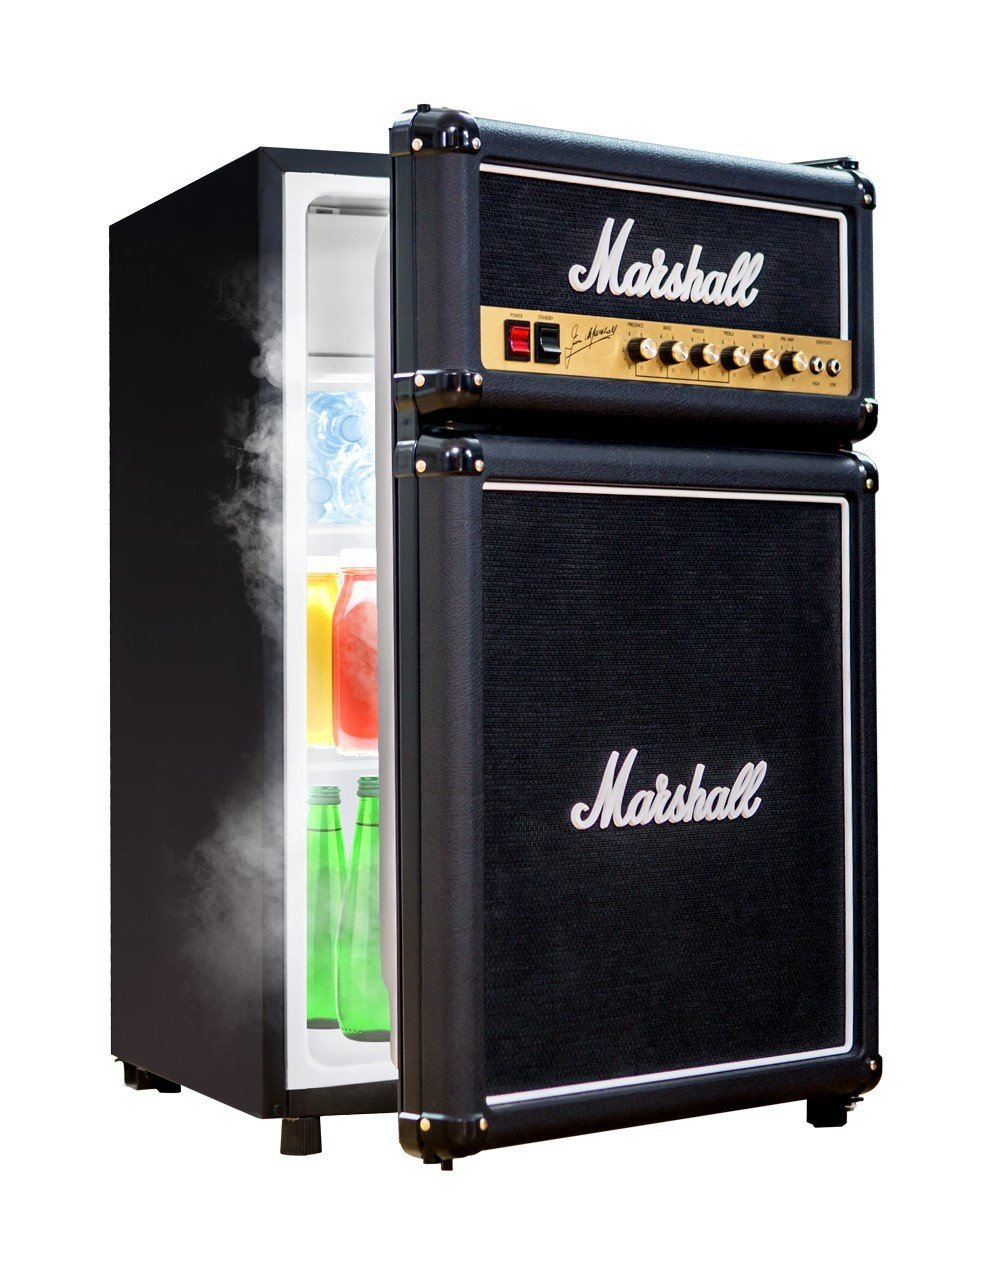 Marshall Compact Fridge, $500 @amazon.com